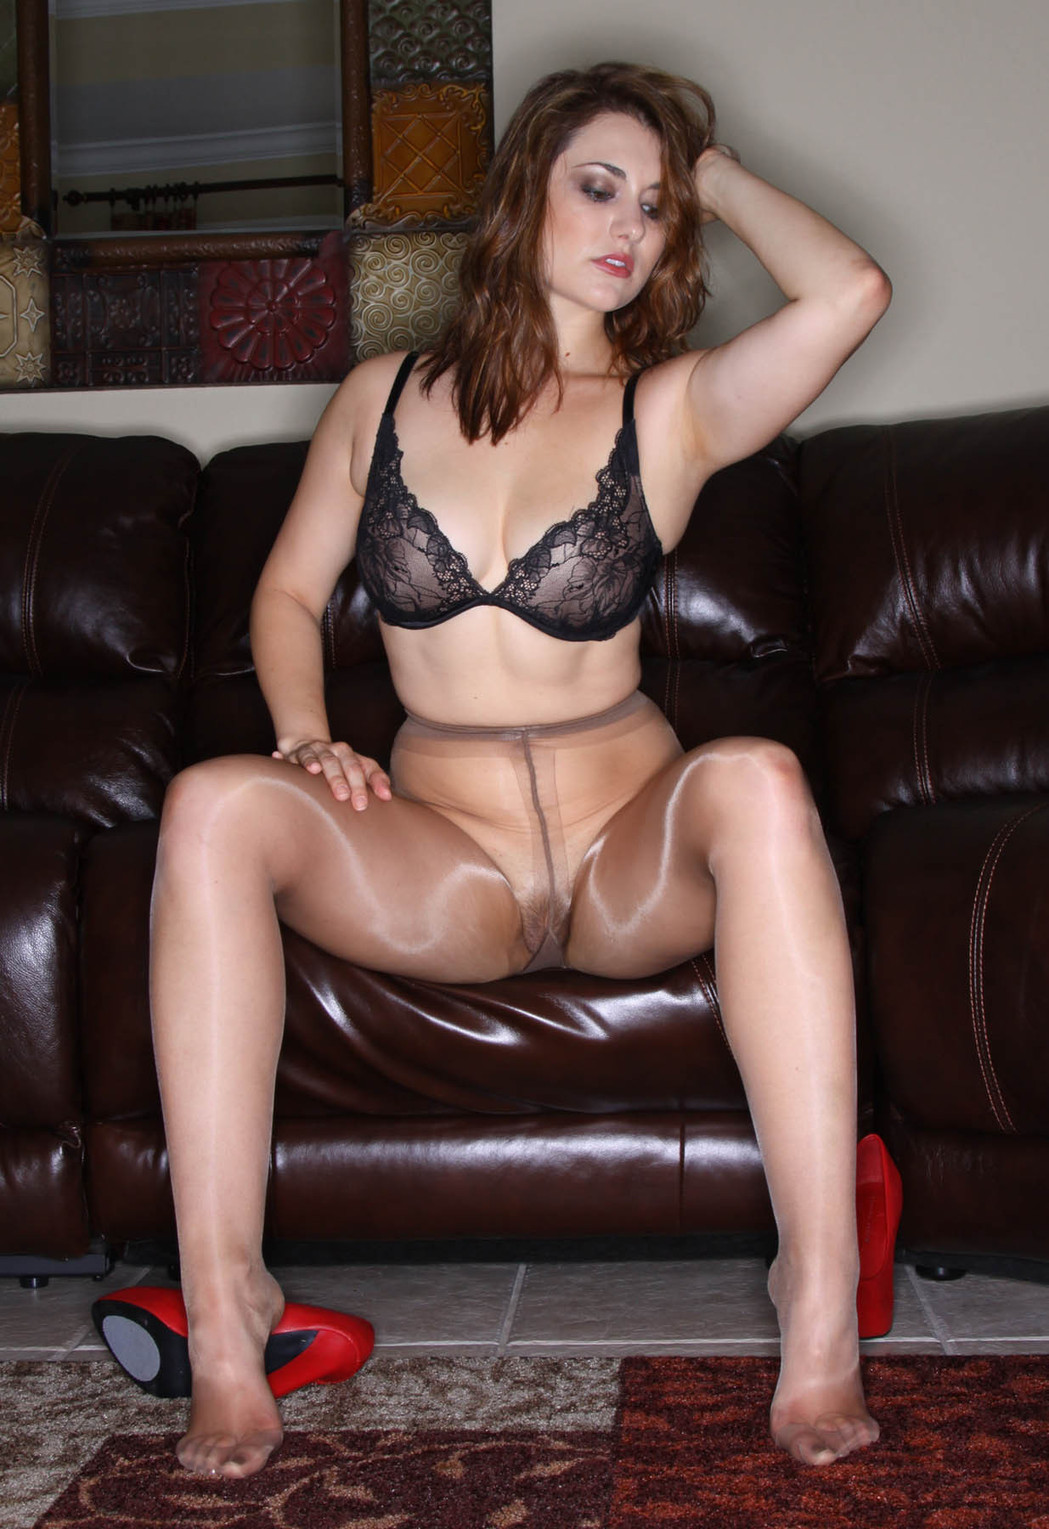 pantyhose video porn